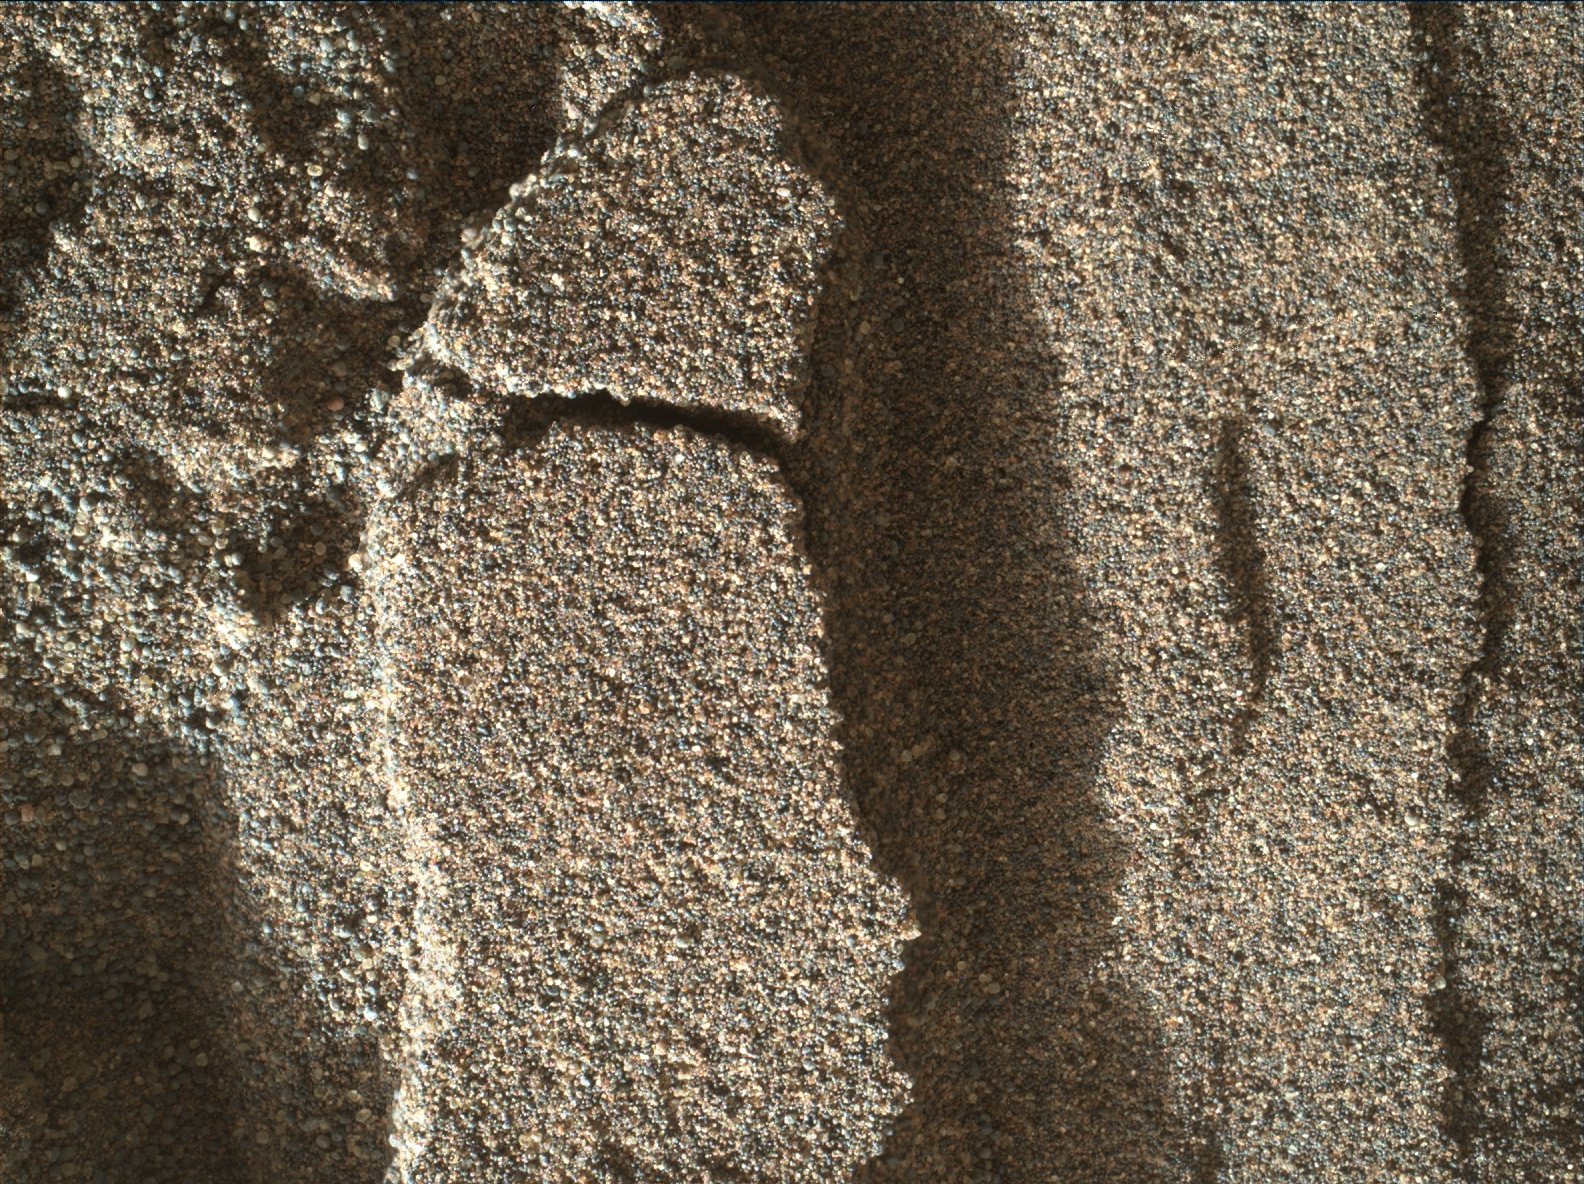 In an up-close 1-inch-wide view, grains of sand near a Martian sand dune are imaged by the arm camera on NASA's Mars rover Curiosity Mars rover.